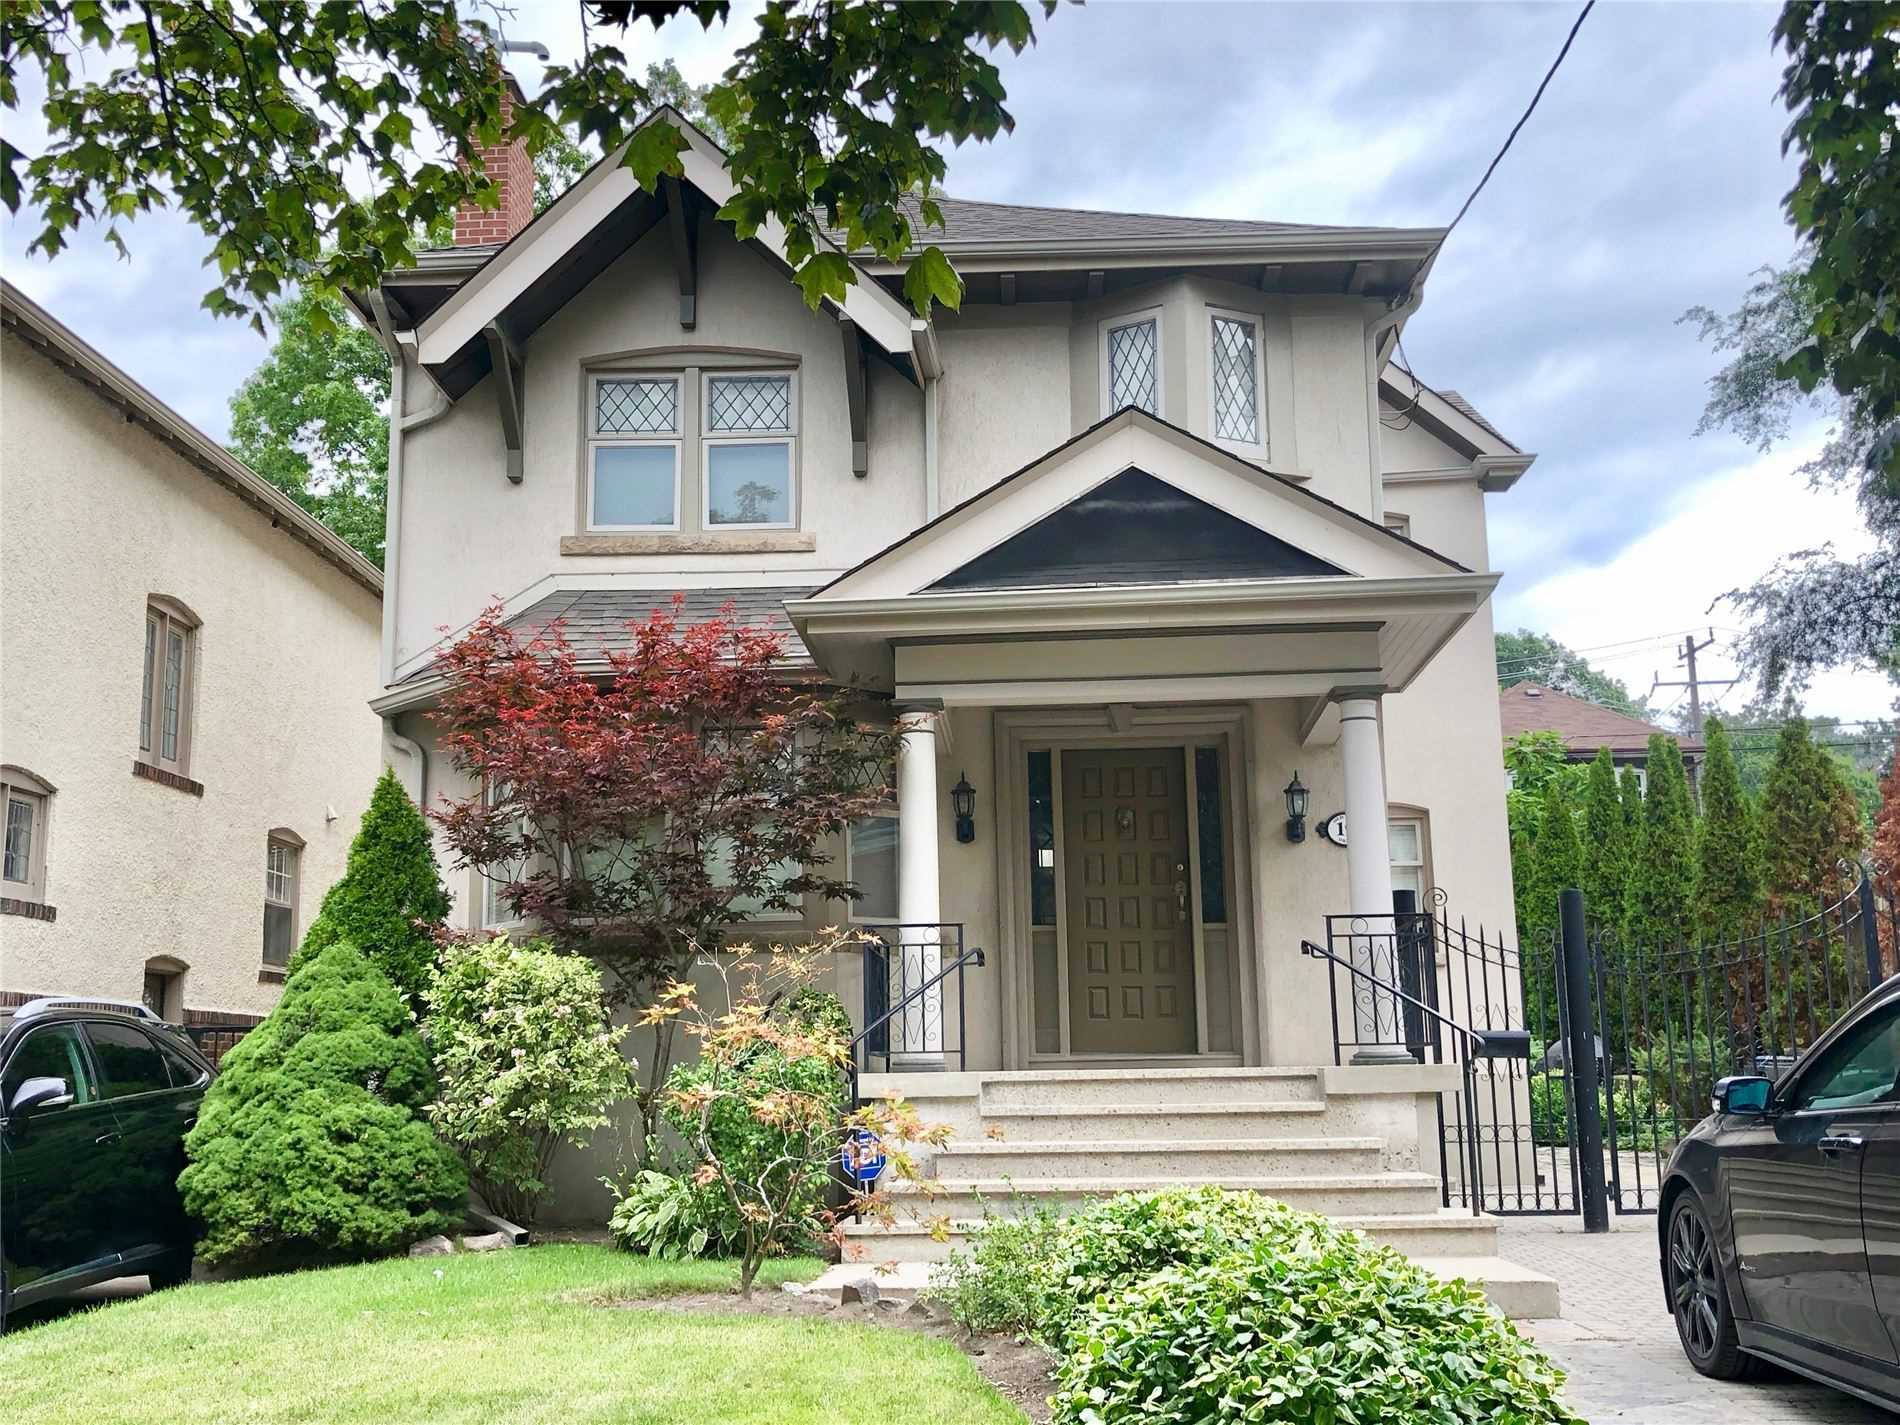 Rarely Offered! Superior Detached, Exclusive Rental! This Well Maintained, Old Mill 3 Bedroom Home With Renovated Kitchen And 2-Bathrooms Is Sure To Check All The Boxes. Main Flr Family Rm Overlooks A Landscaped Garden. Gorgeous Wood Trim, Leaded Glass, Gumwood, Modern Mechanics And Many Updates. Steps To Transit, Shopping & Restaurants. Easy Access To Highways Making Your Morning Commute A Breeze.